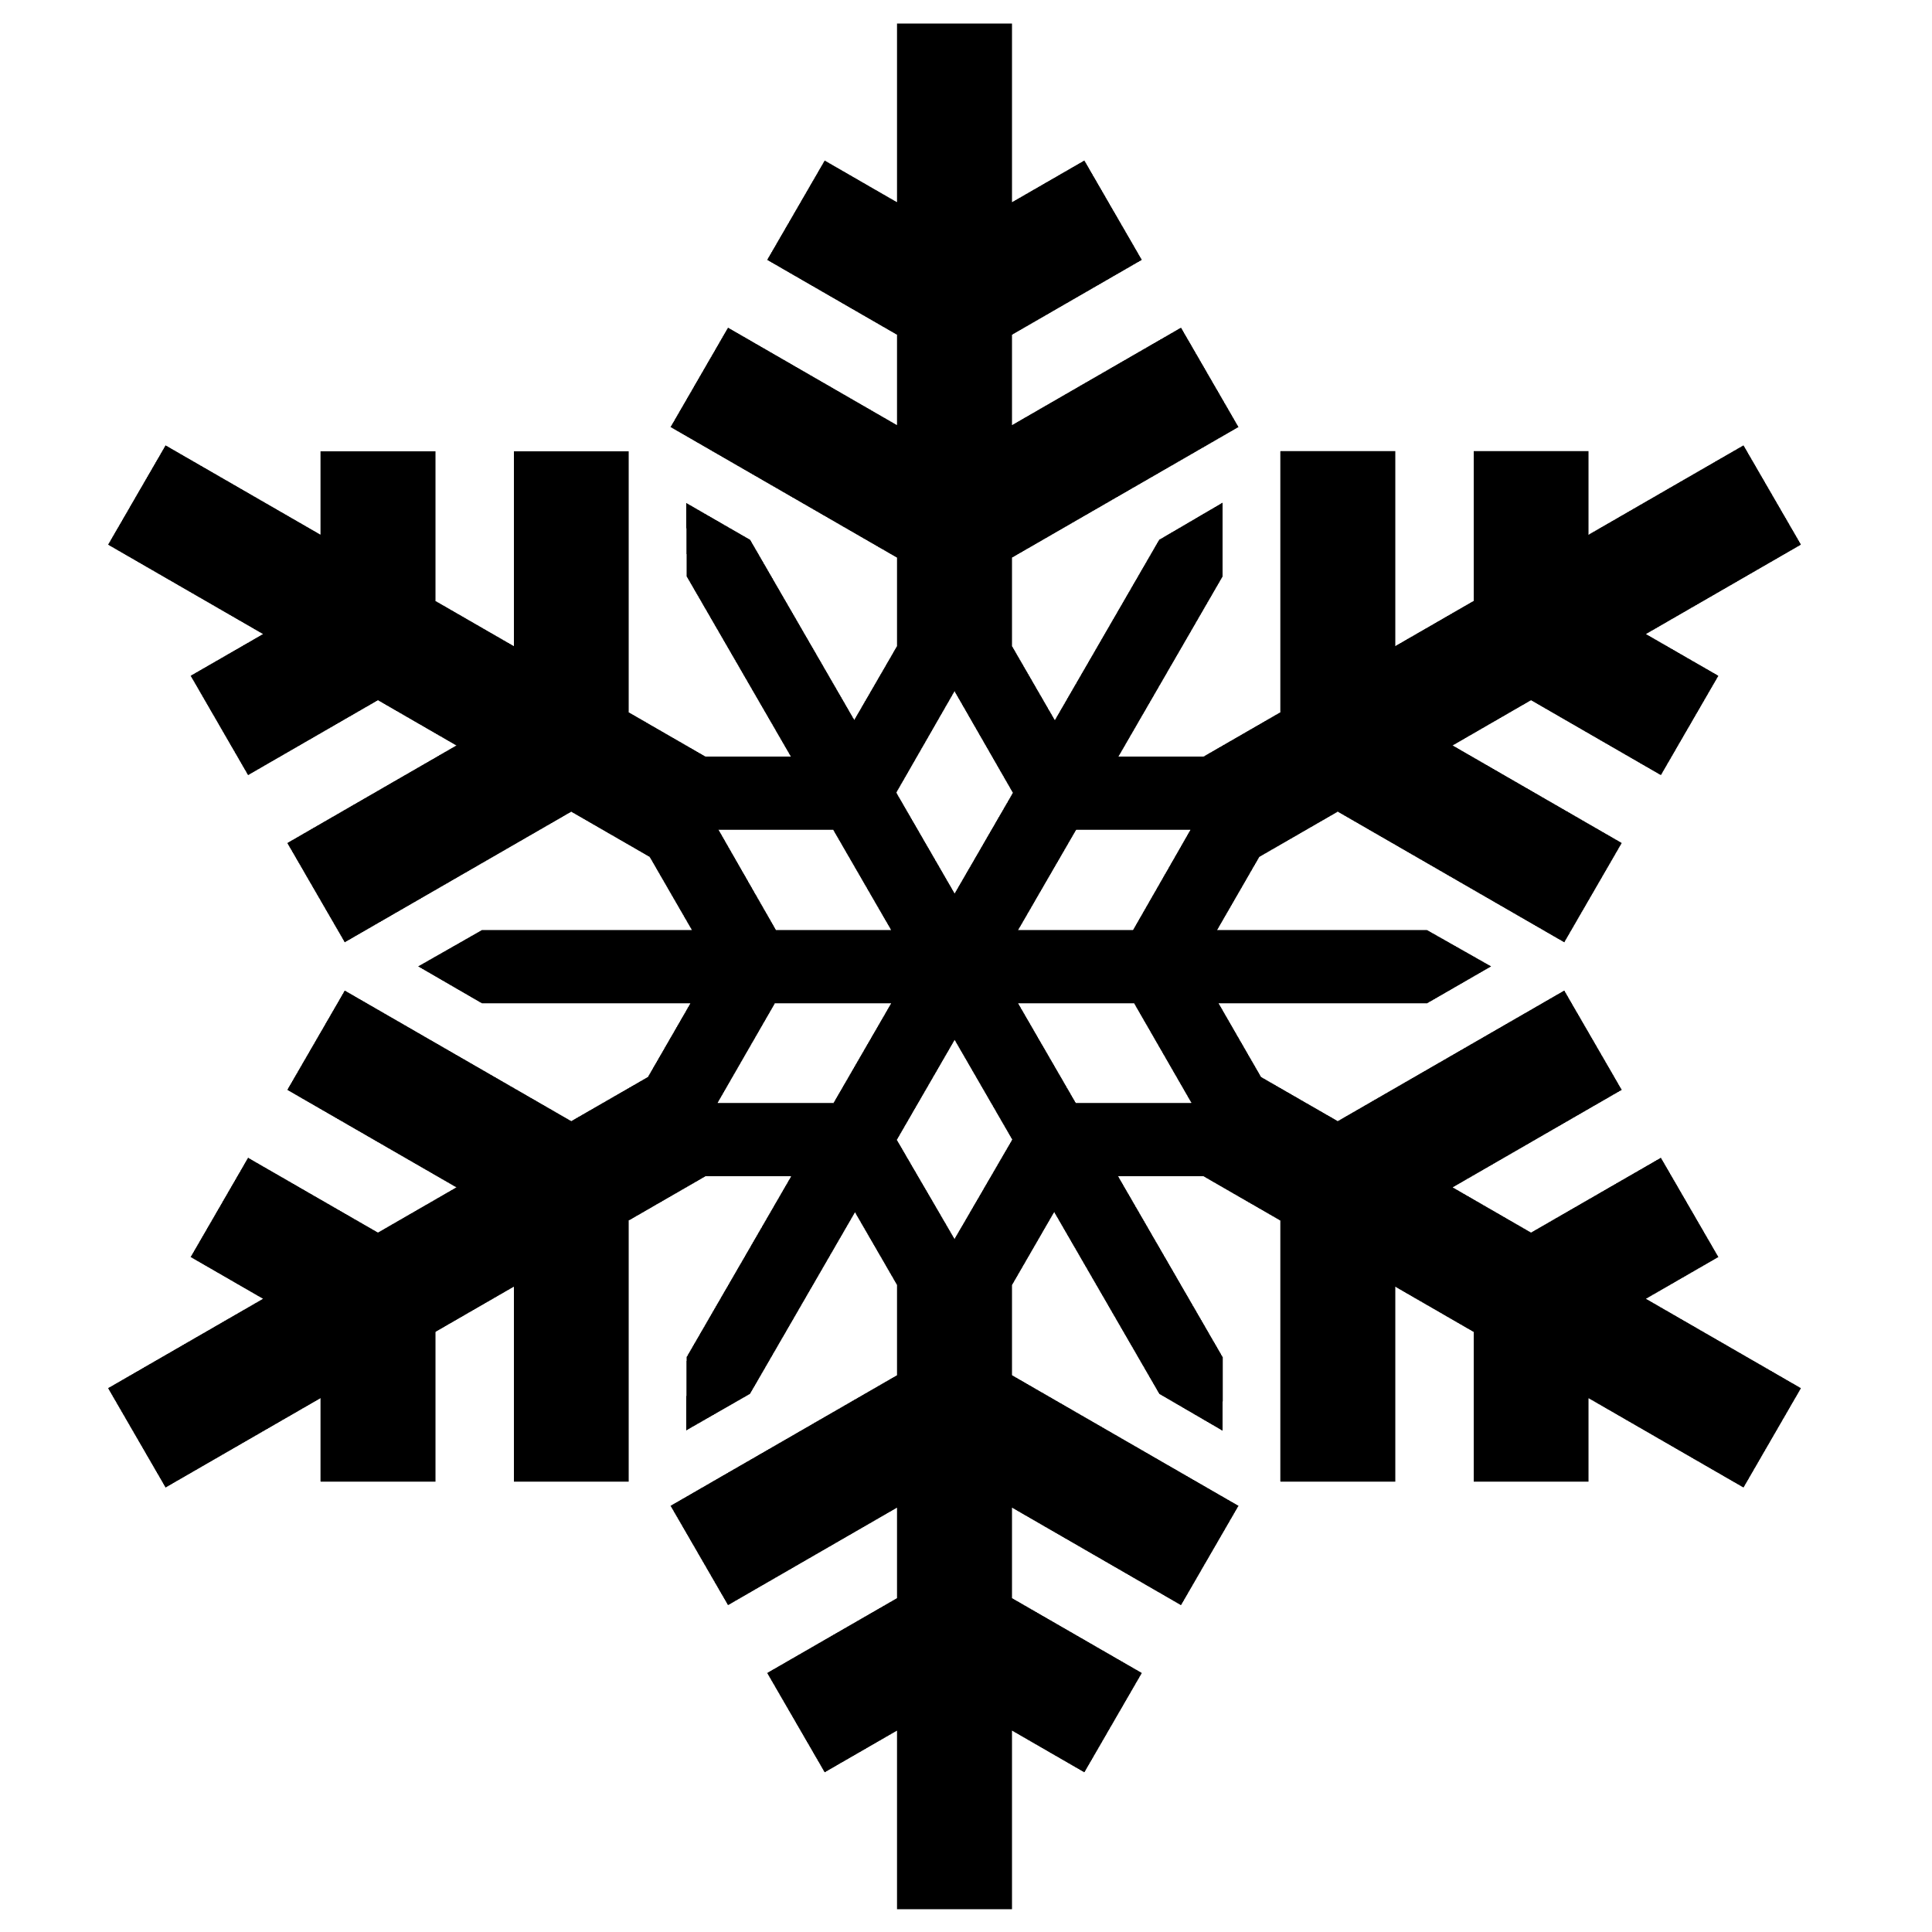 Black Snowflake Silhouette Free Image Find great deals on ebay for snowflake silhouettes. black snowflake silhouette free image